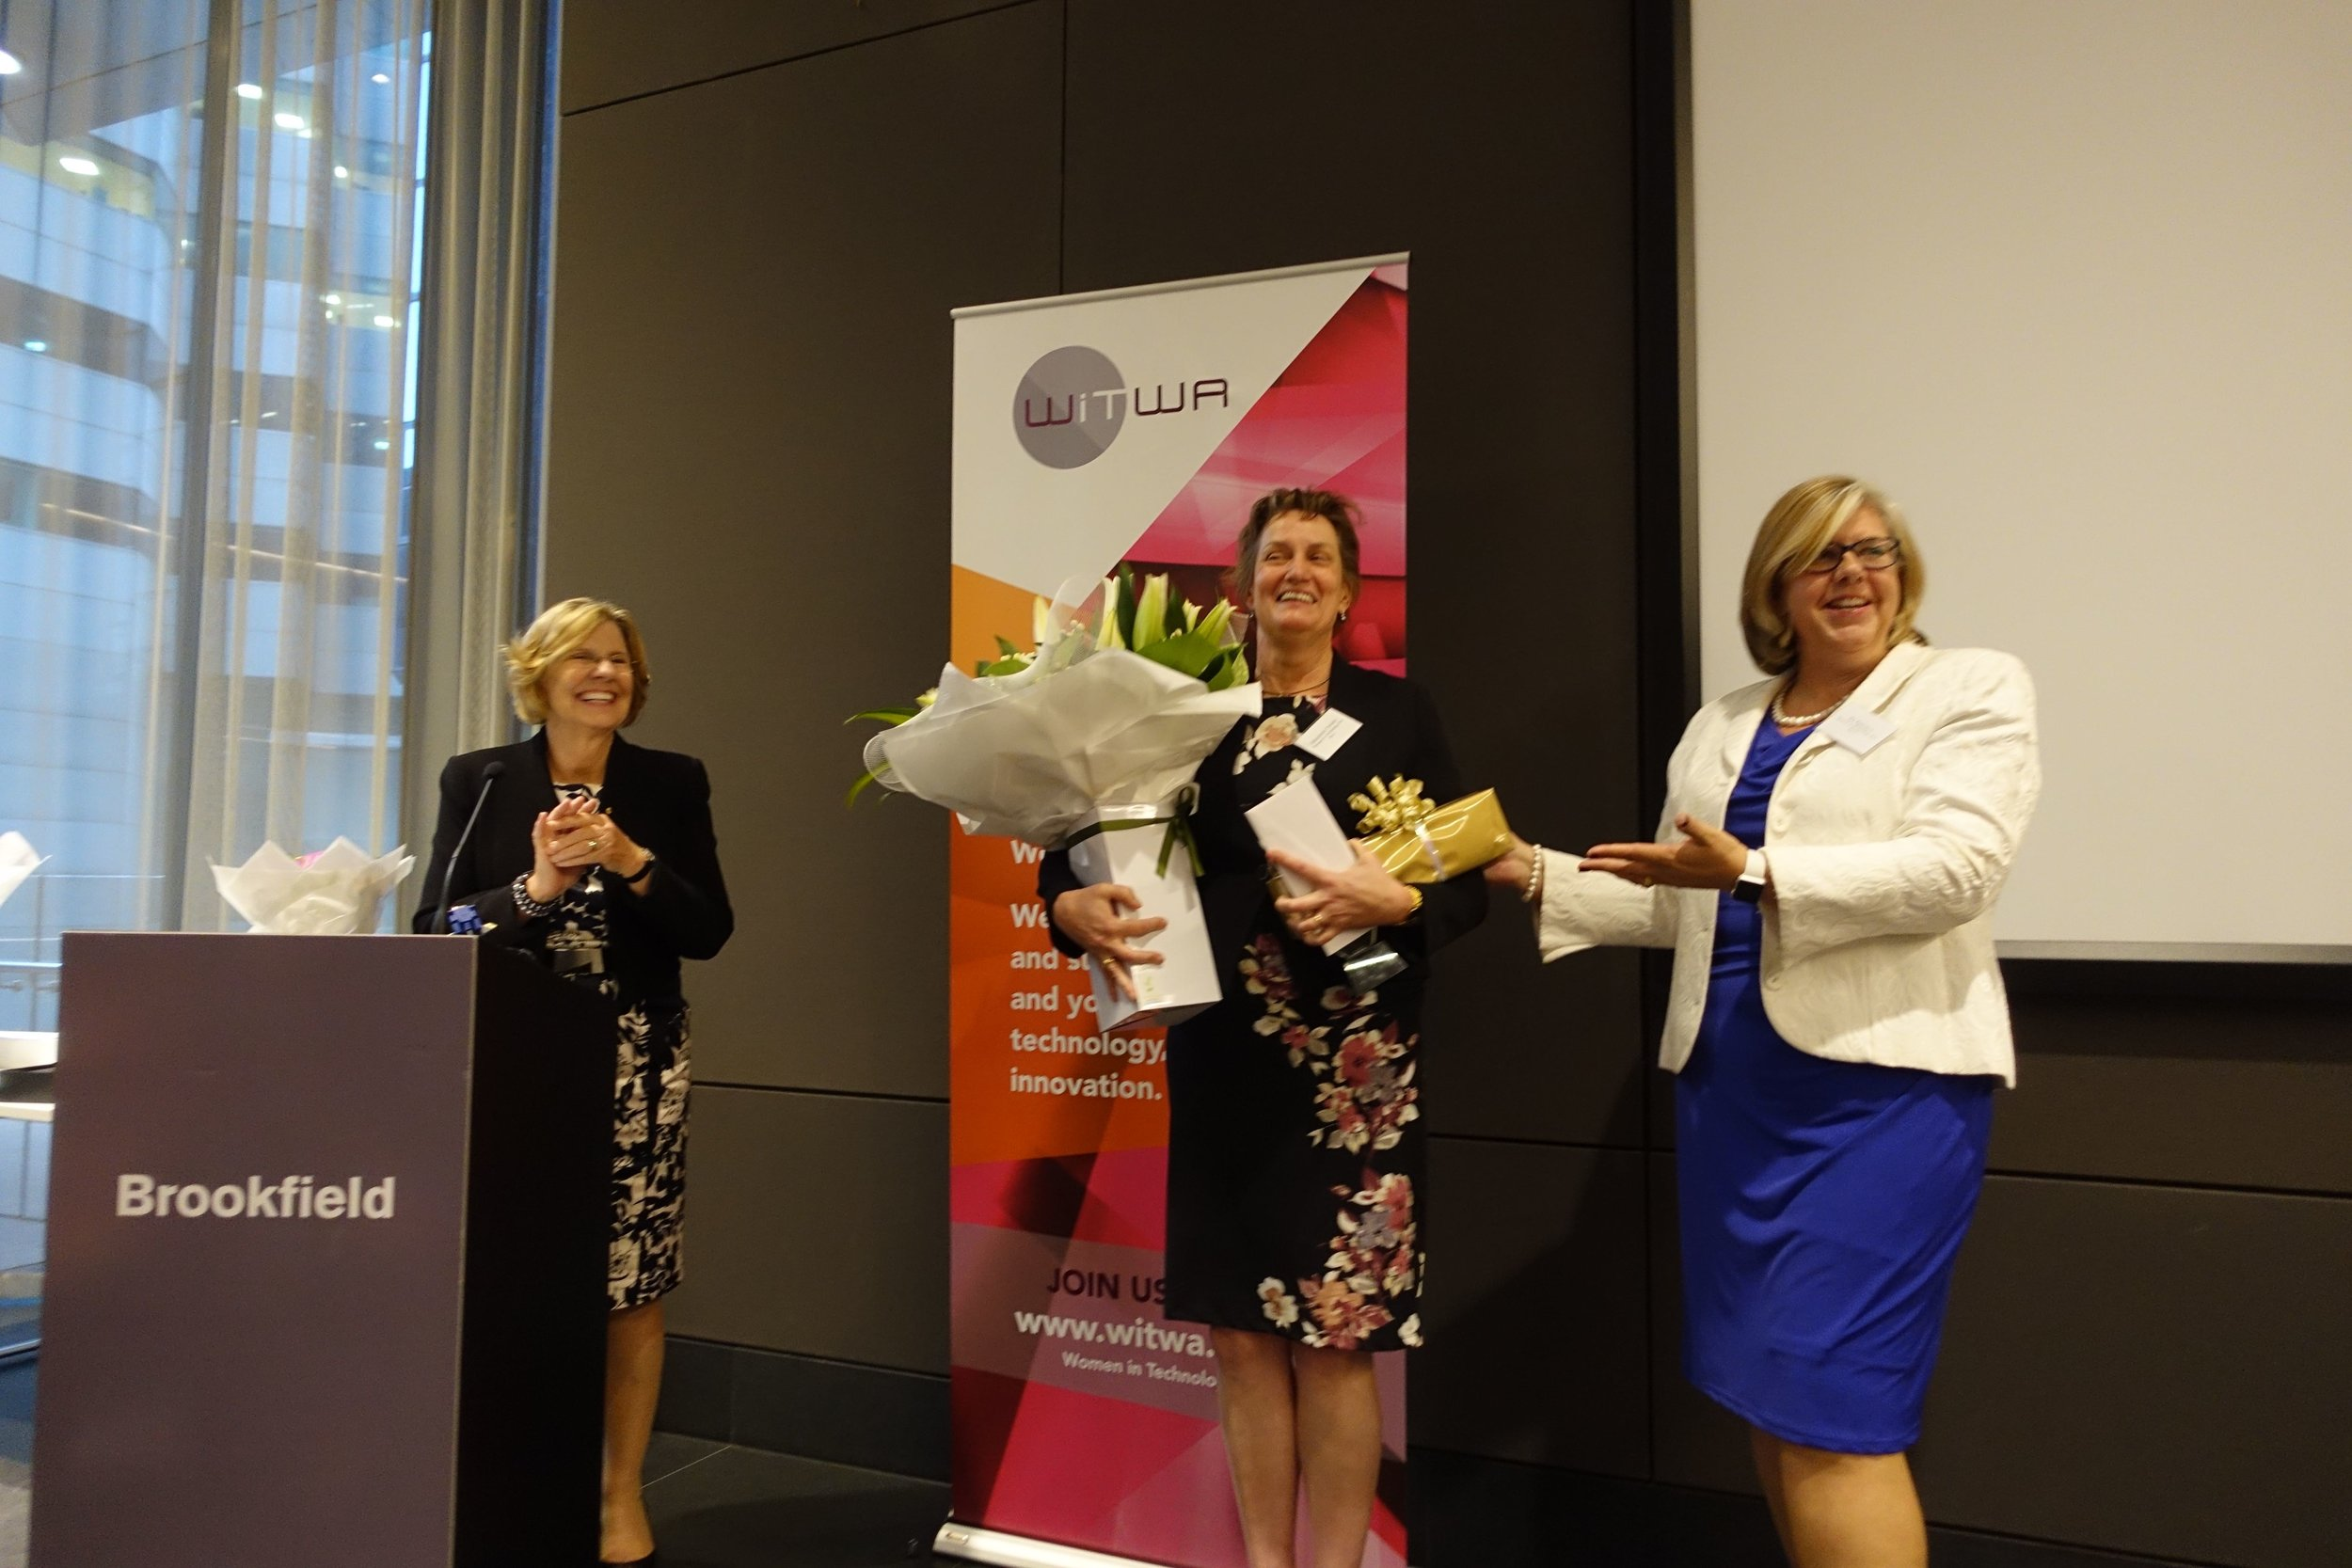 Marjolein Towler being presented gifts OF APPRECIATION by Pia Turcinov